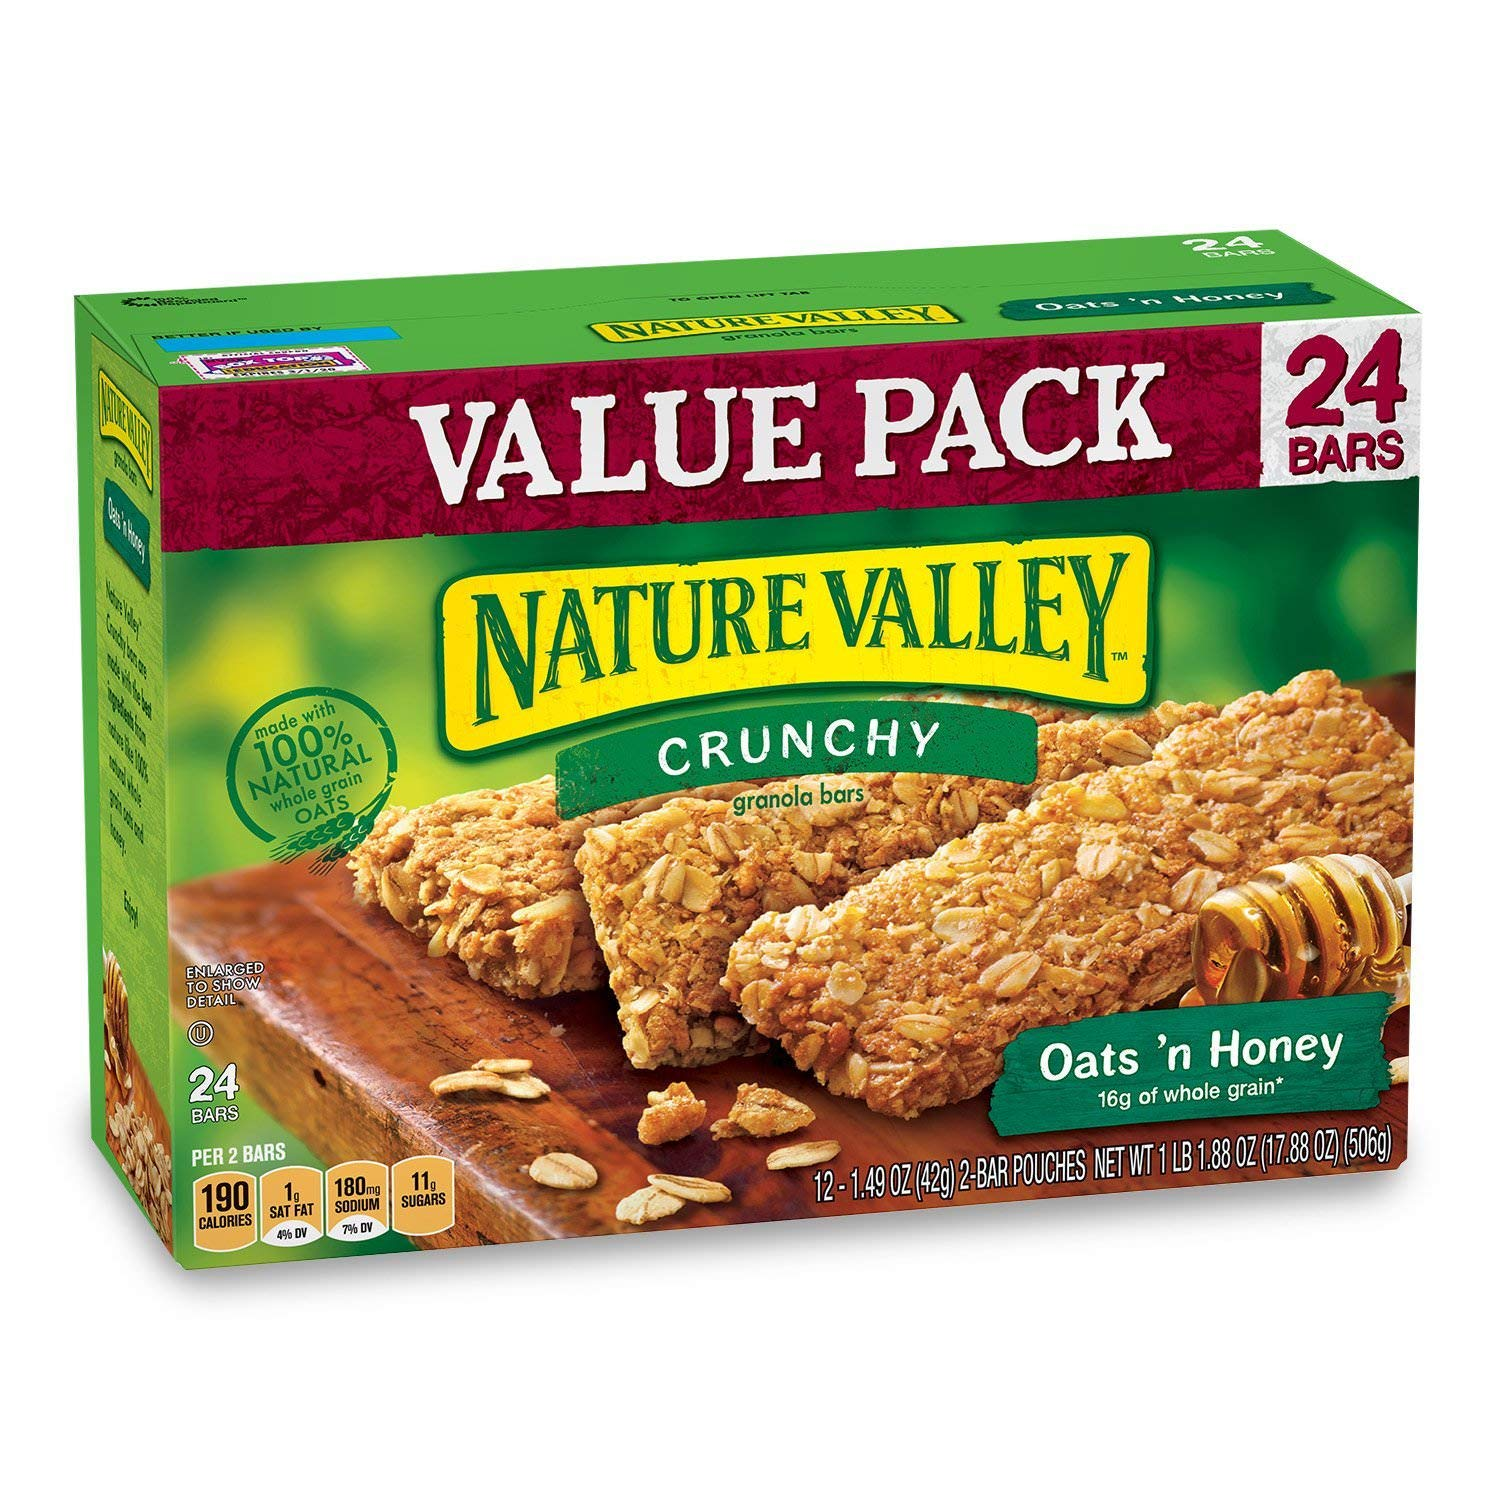 Nature Valley Granola Bars, Crunchy, Oats and Honey, 1.49 Ounce, 12 Bars (24 Boxes) by Nature Valley